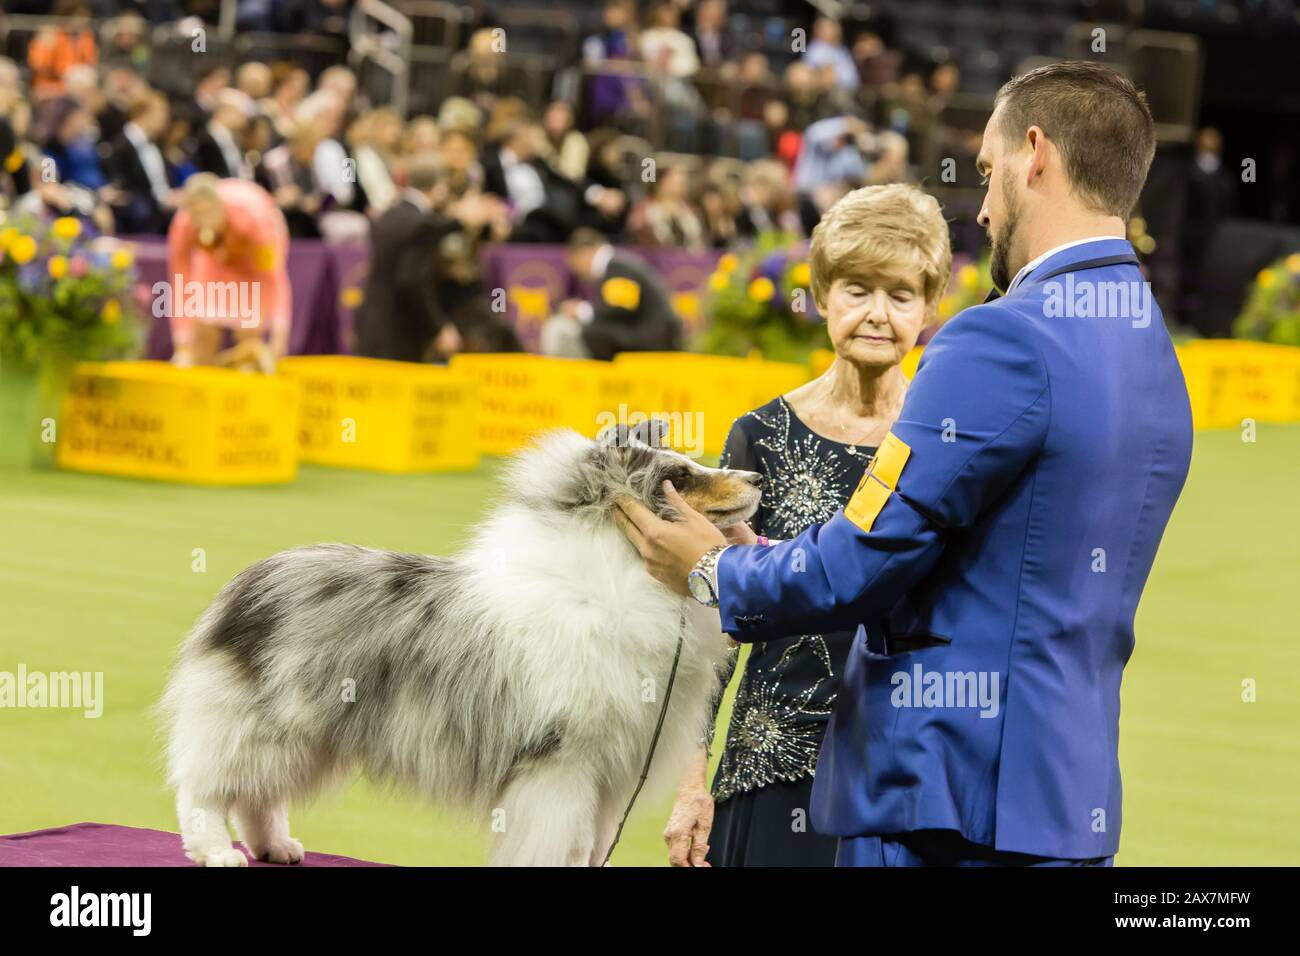 New York, NY, USA. 10th Feb, 2020. Conrad, a Shetland sheepdog, placed first in the herding group judging at the 144th Westminster Kennel Club Dog show at New York's Madison Square Garden. Credit: Ed Lefkowicz/Alamy Live News Stock Photo